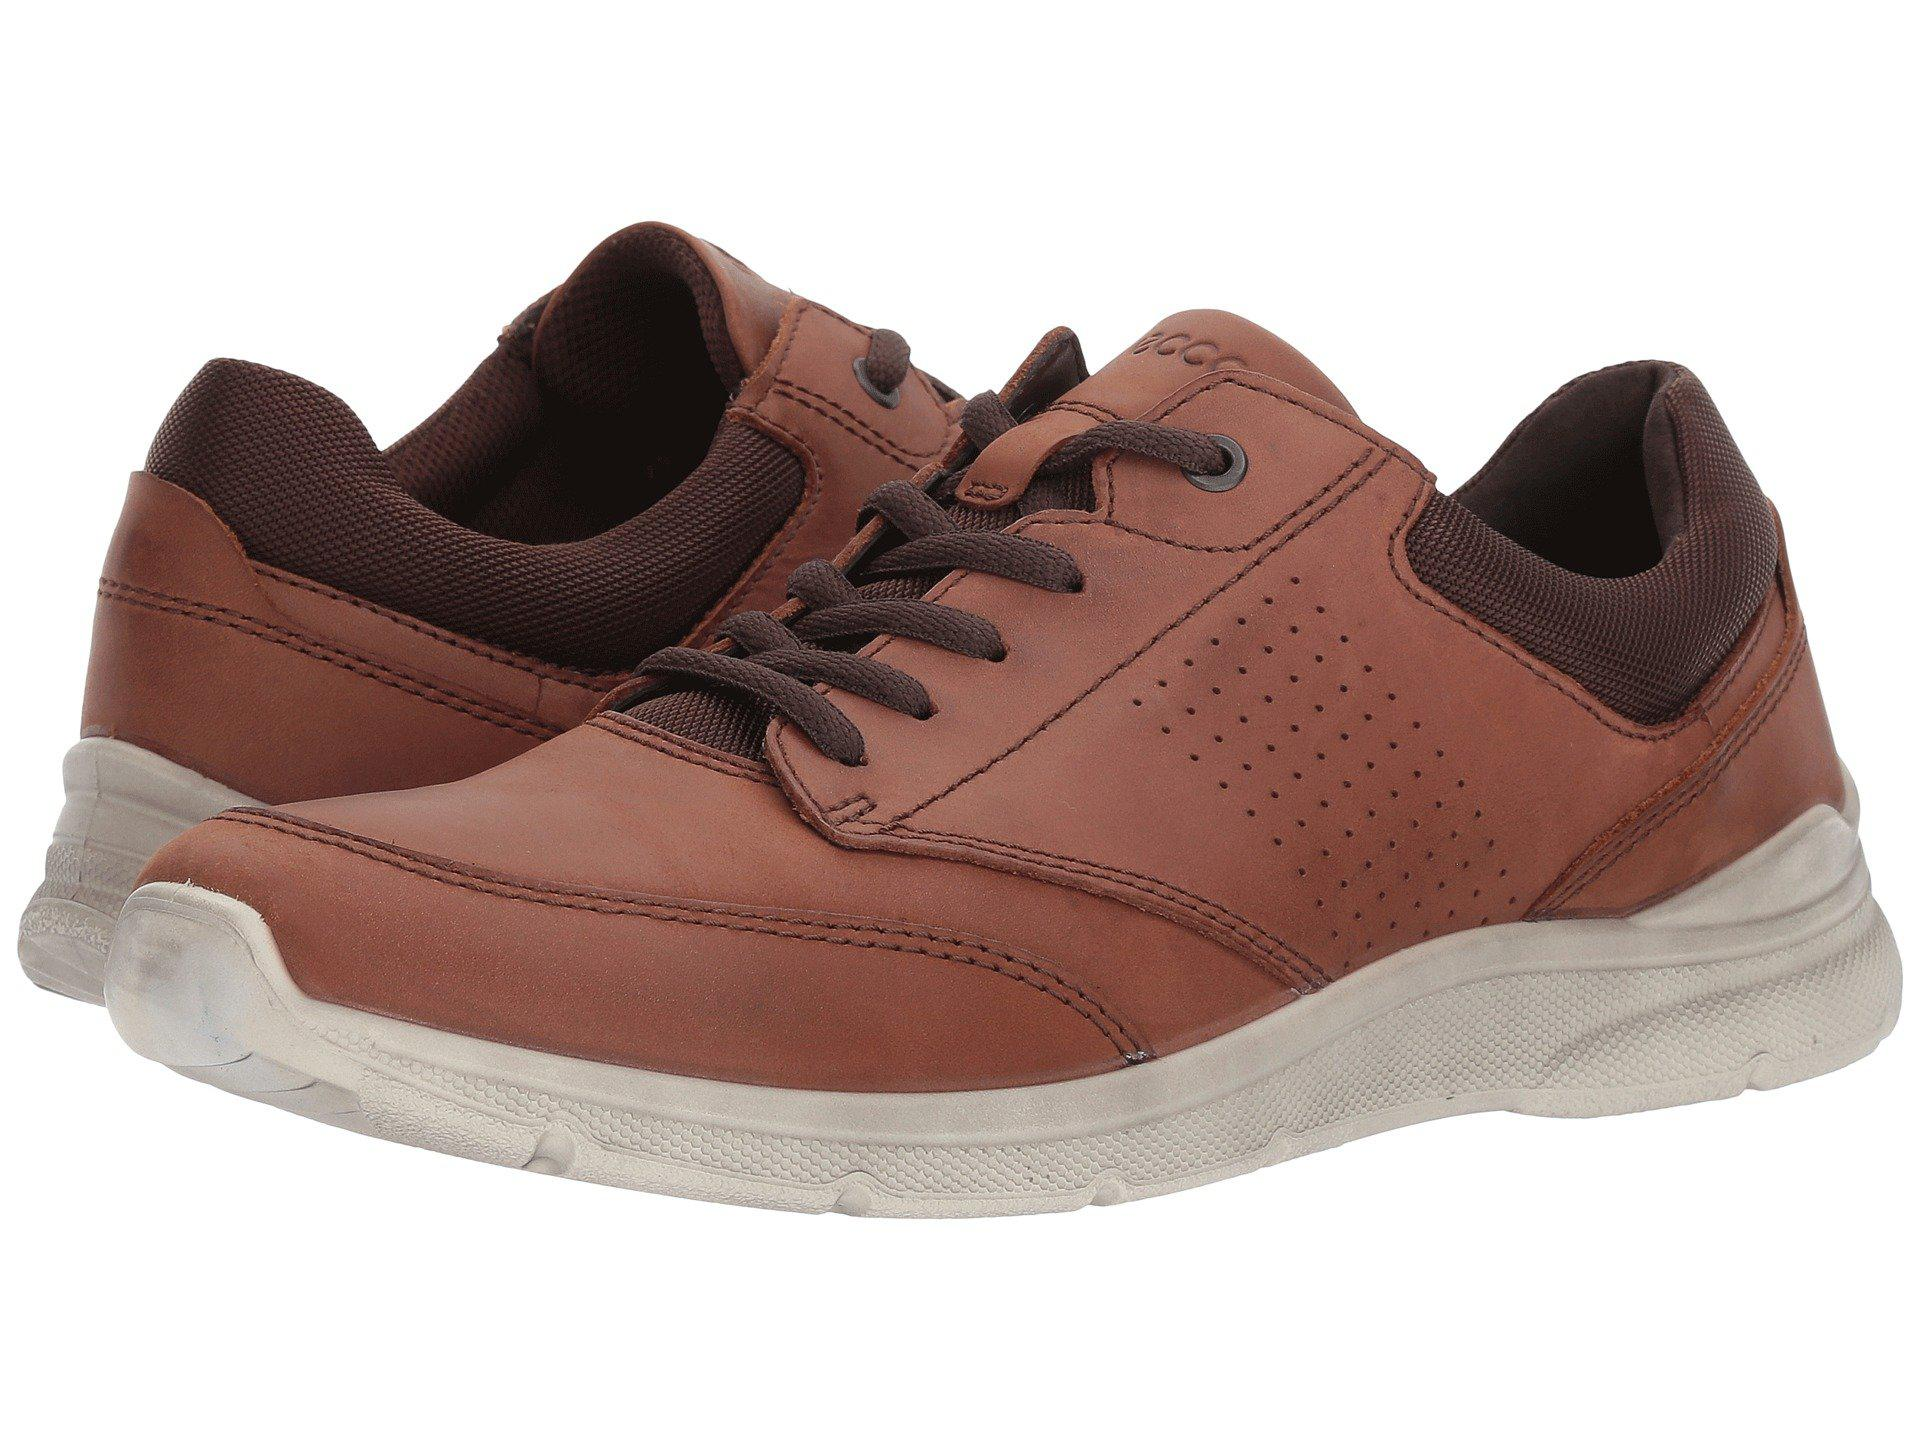 35a198c83772 Lyst - Ecco Irving Casual Tie (mink) Men s Lace Up Casual Shoes in ...